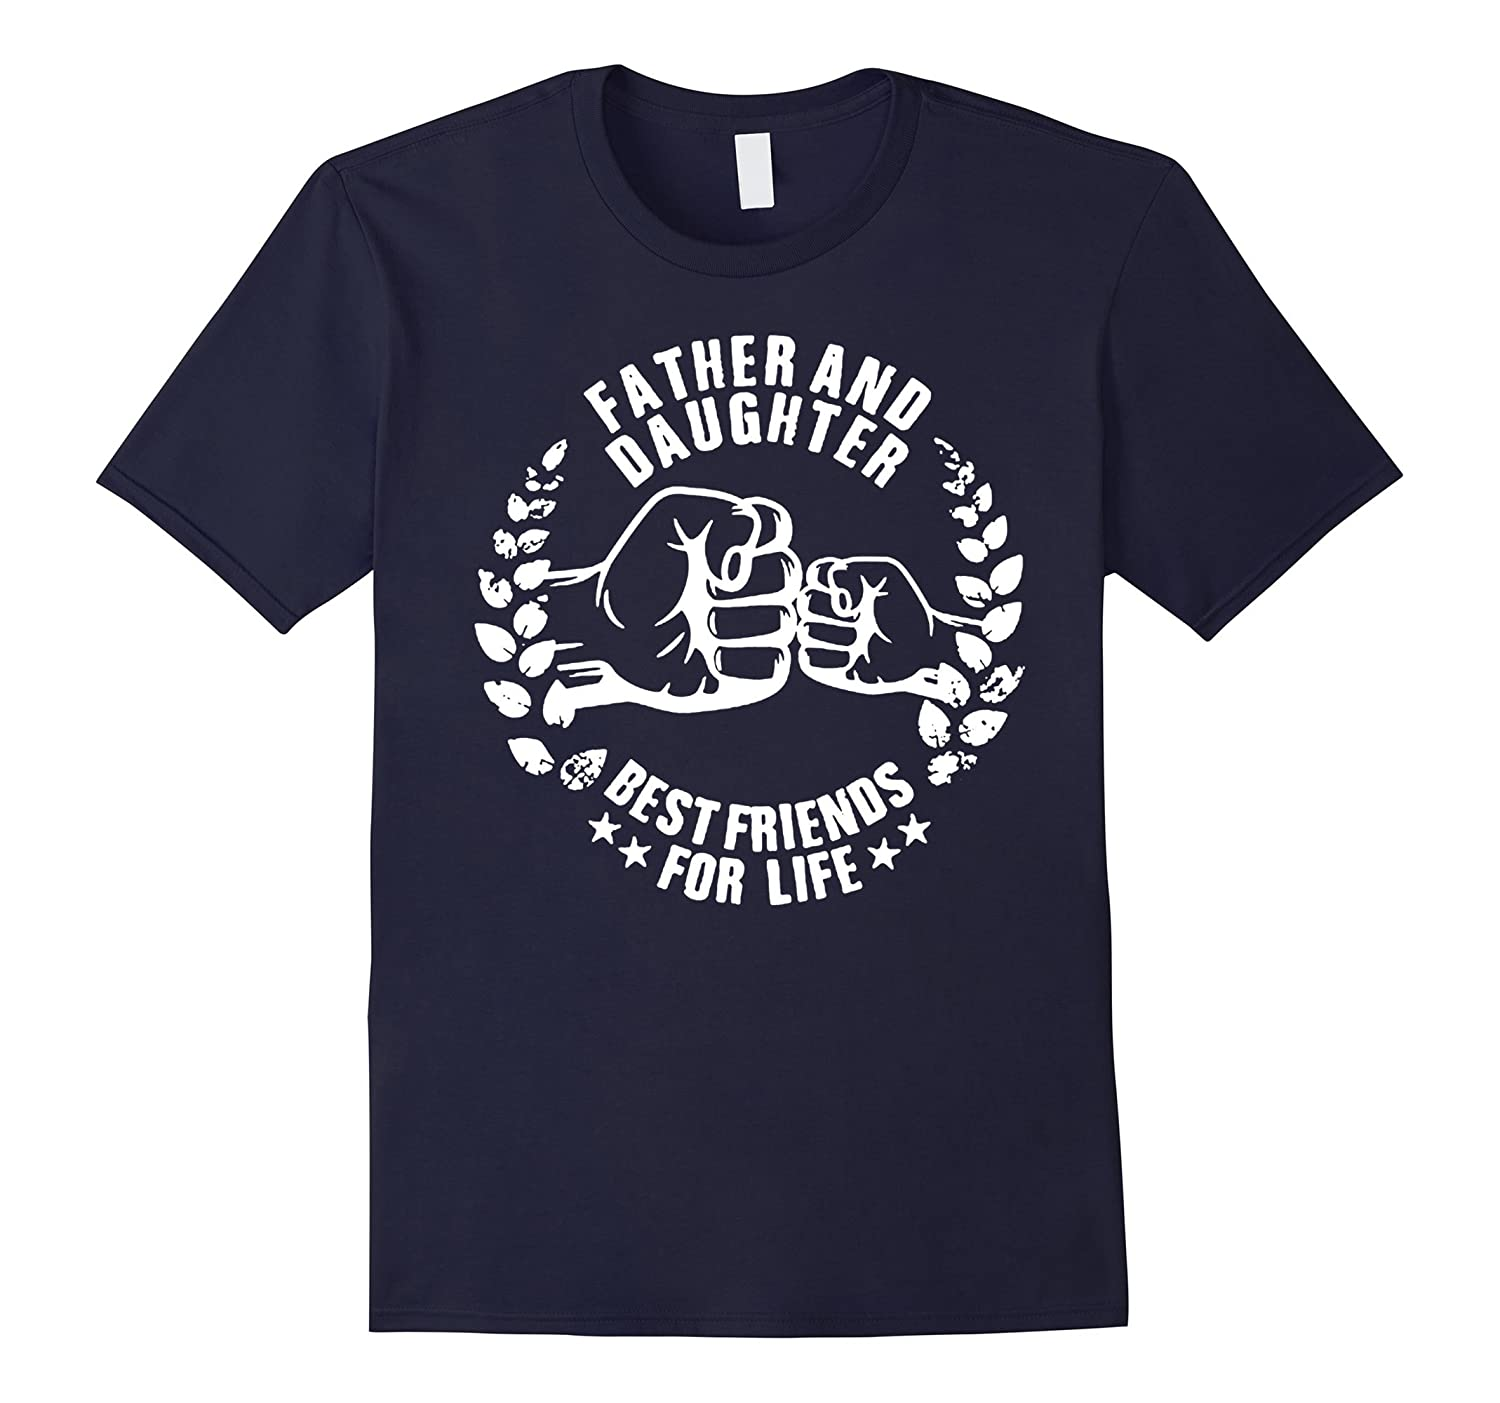 FATHER AND DAUGHTER BEST FRIENDS FOR LIFE SHIRT